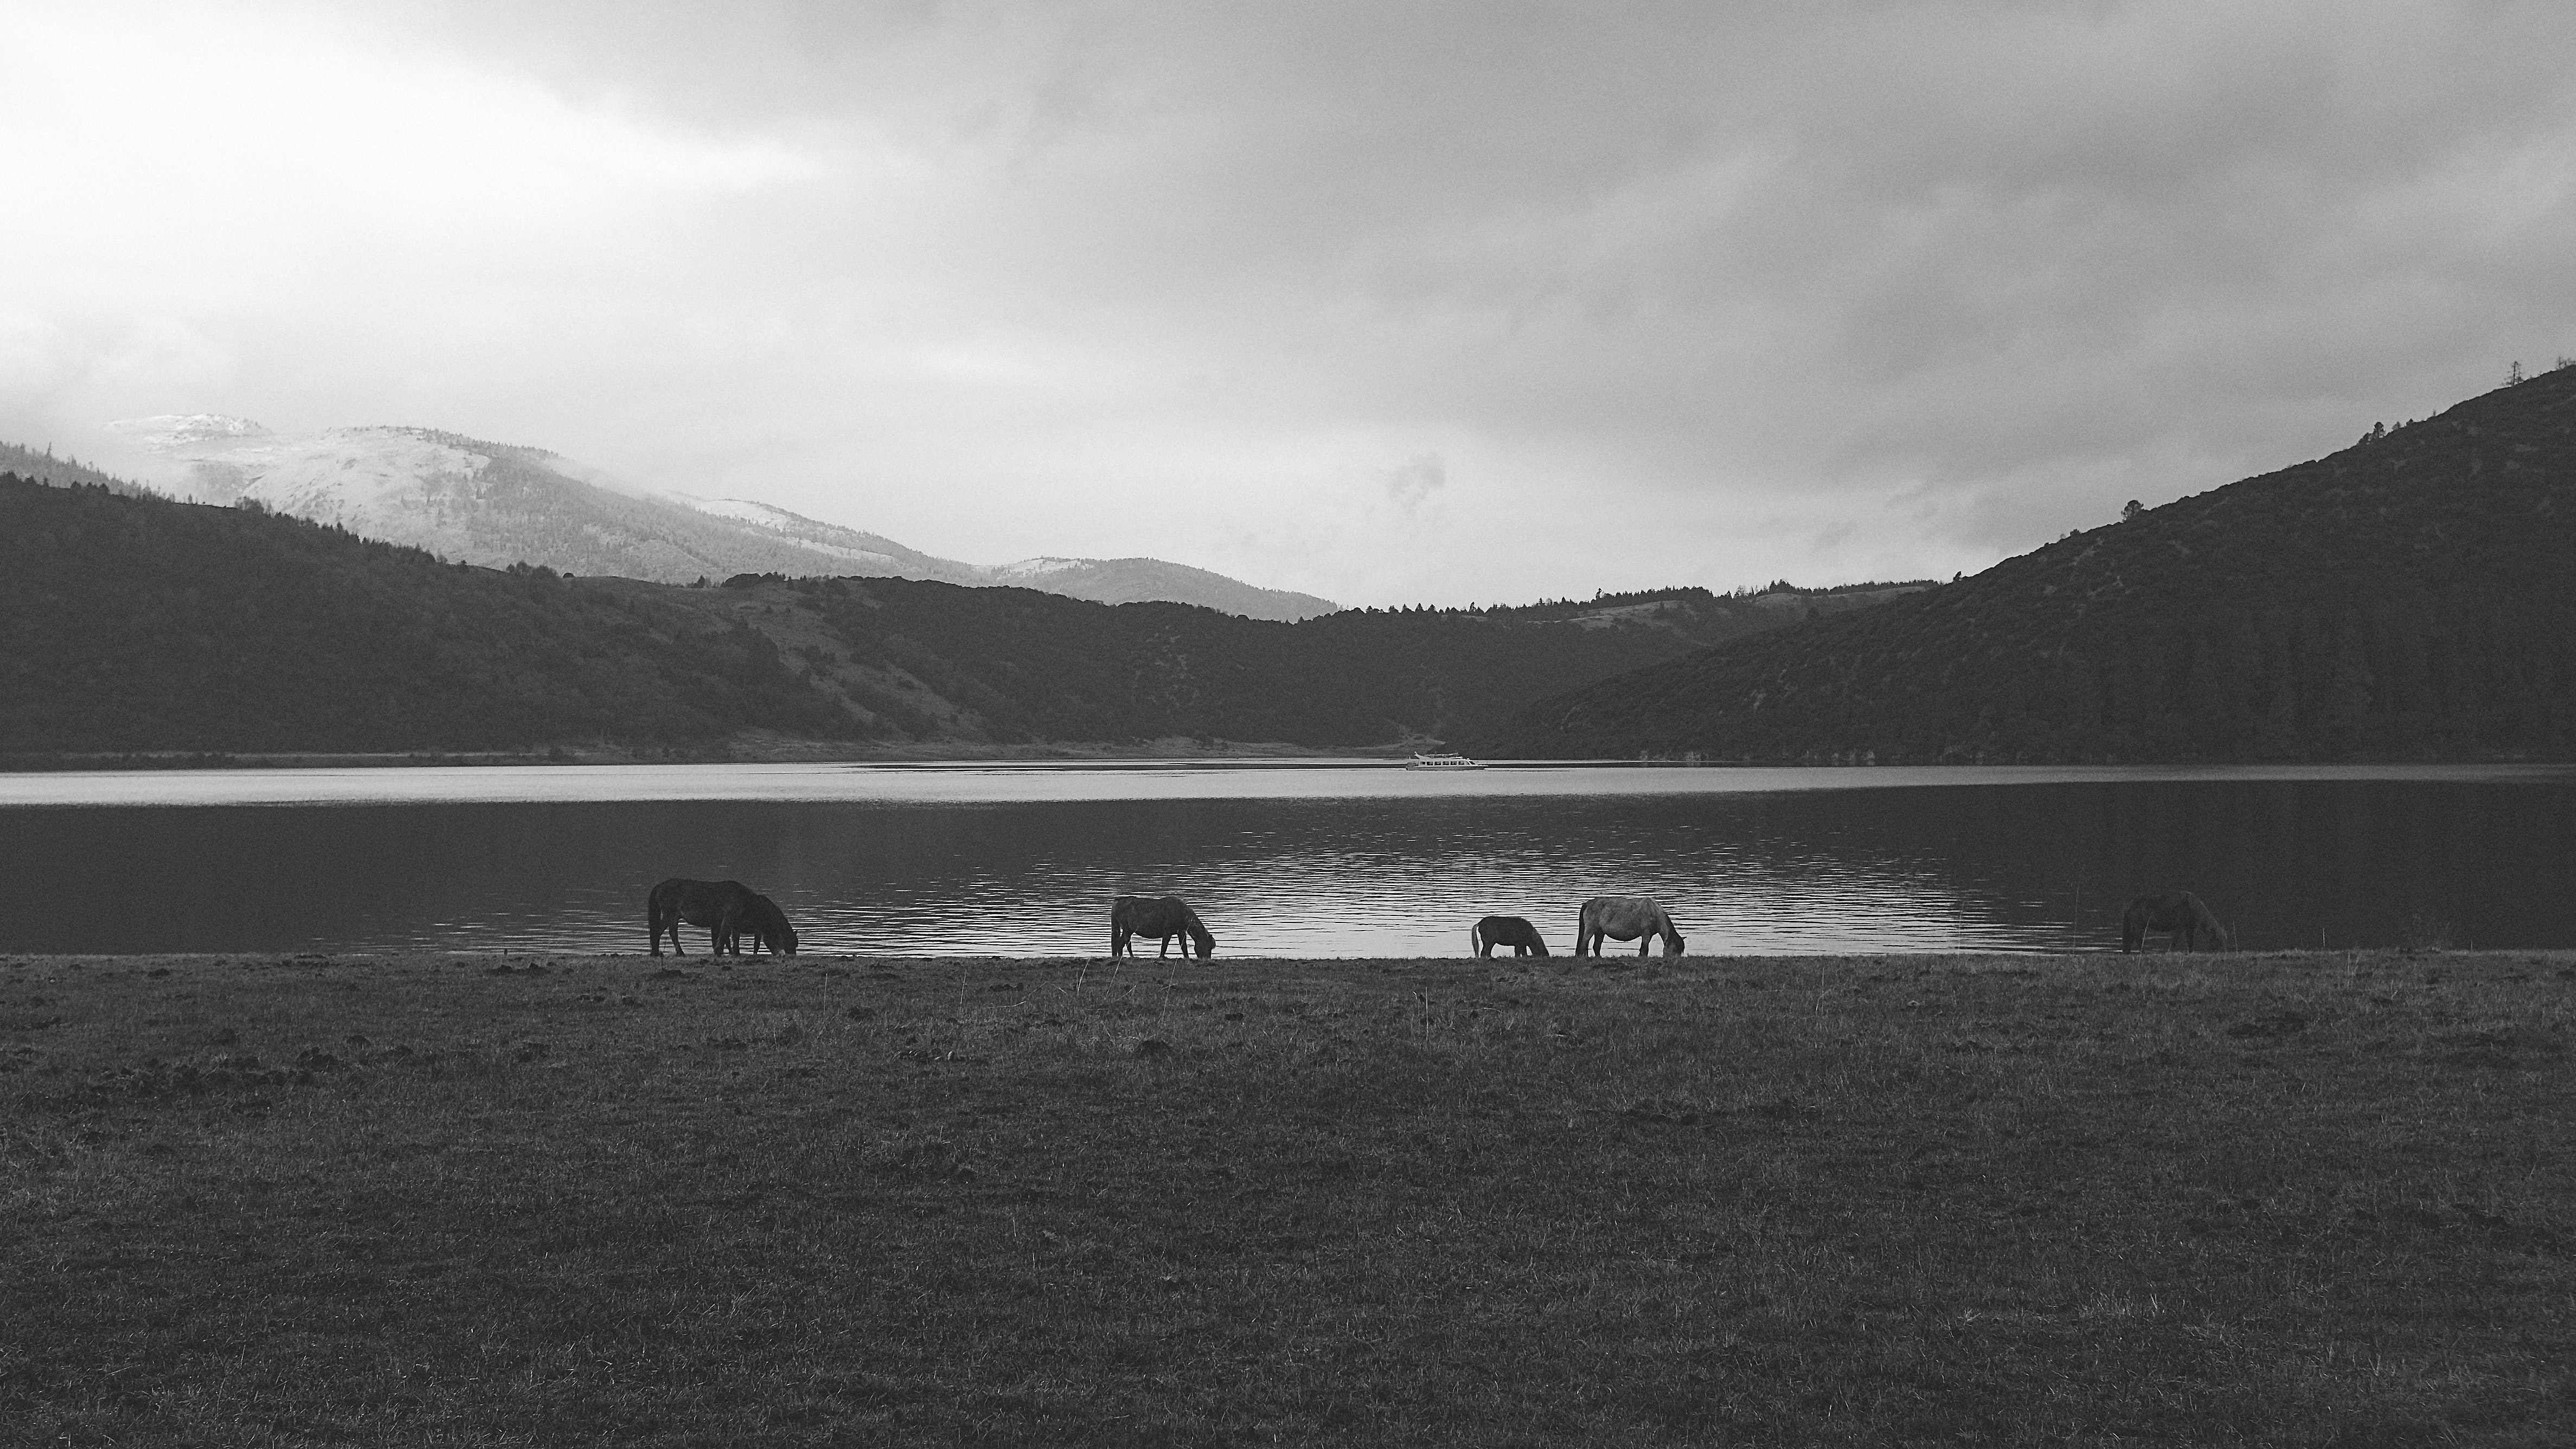 A black and white shot of a herd of horses grazing on the shore of a lake